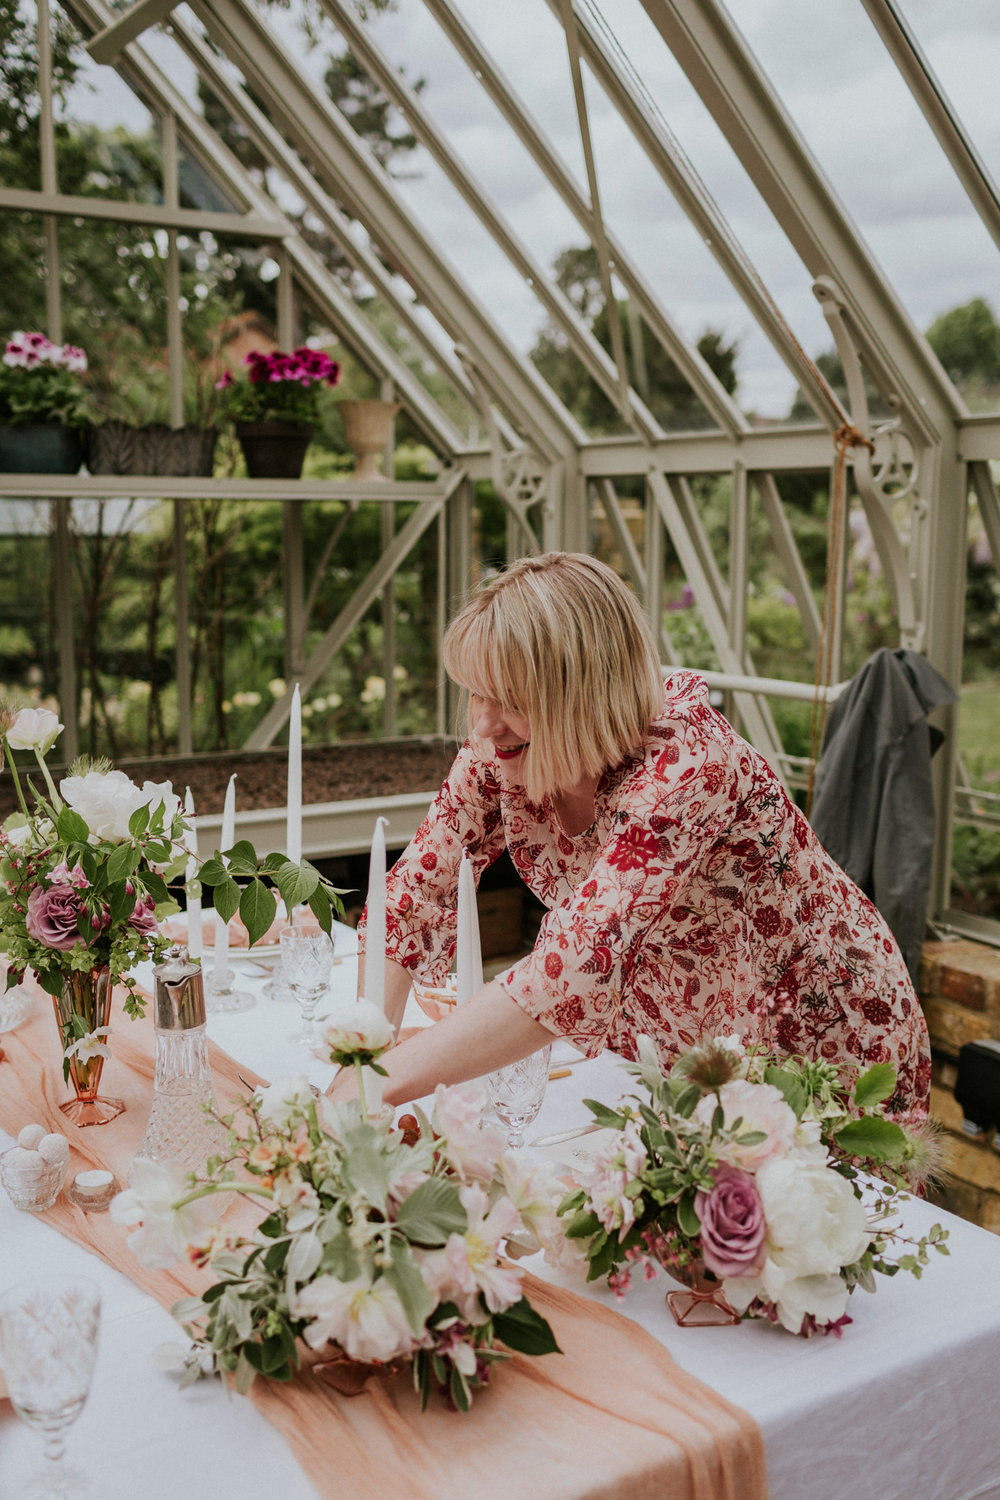 The Timeless Stylist - Wedding Design and Styling UK - Preparing to Style a Tablescape